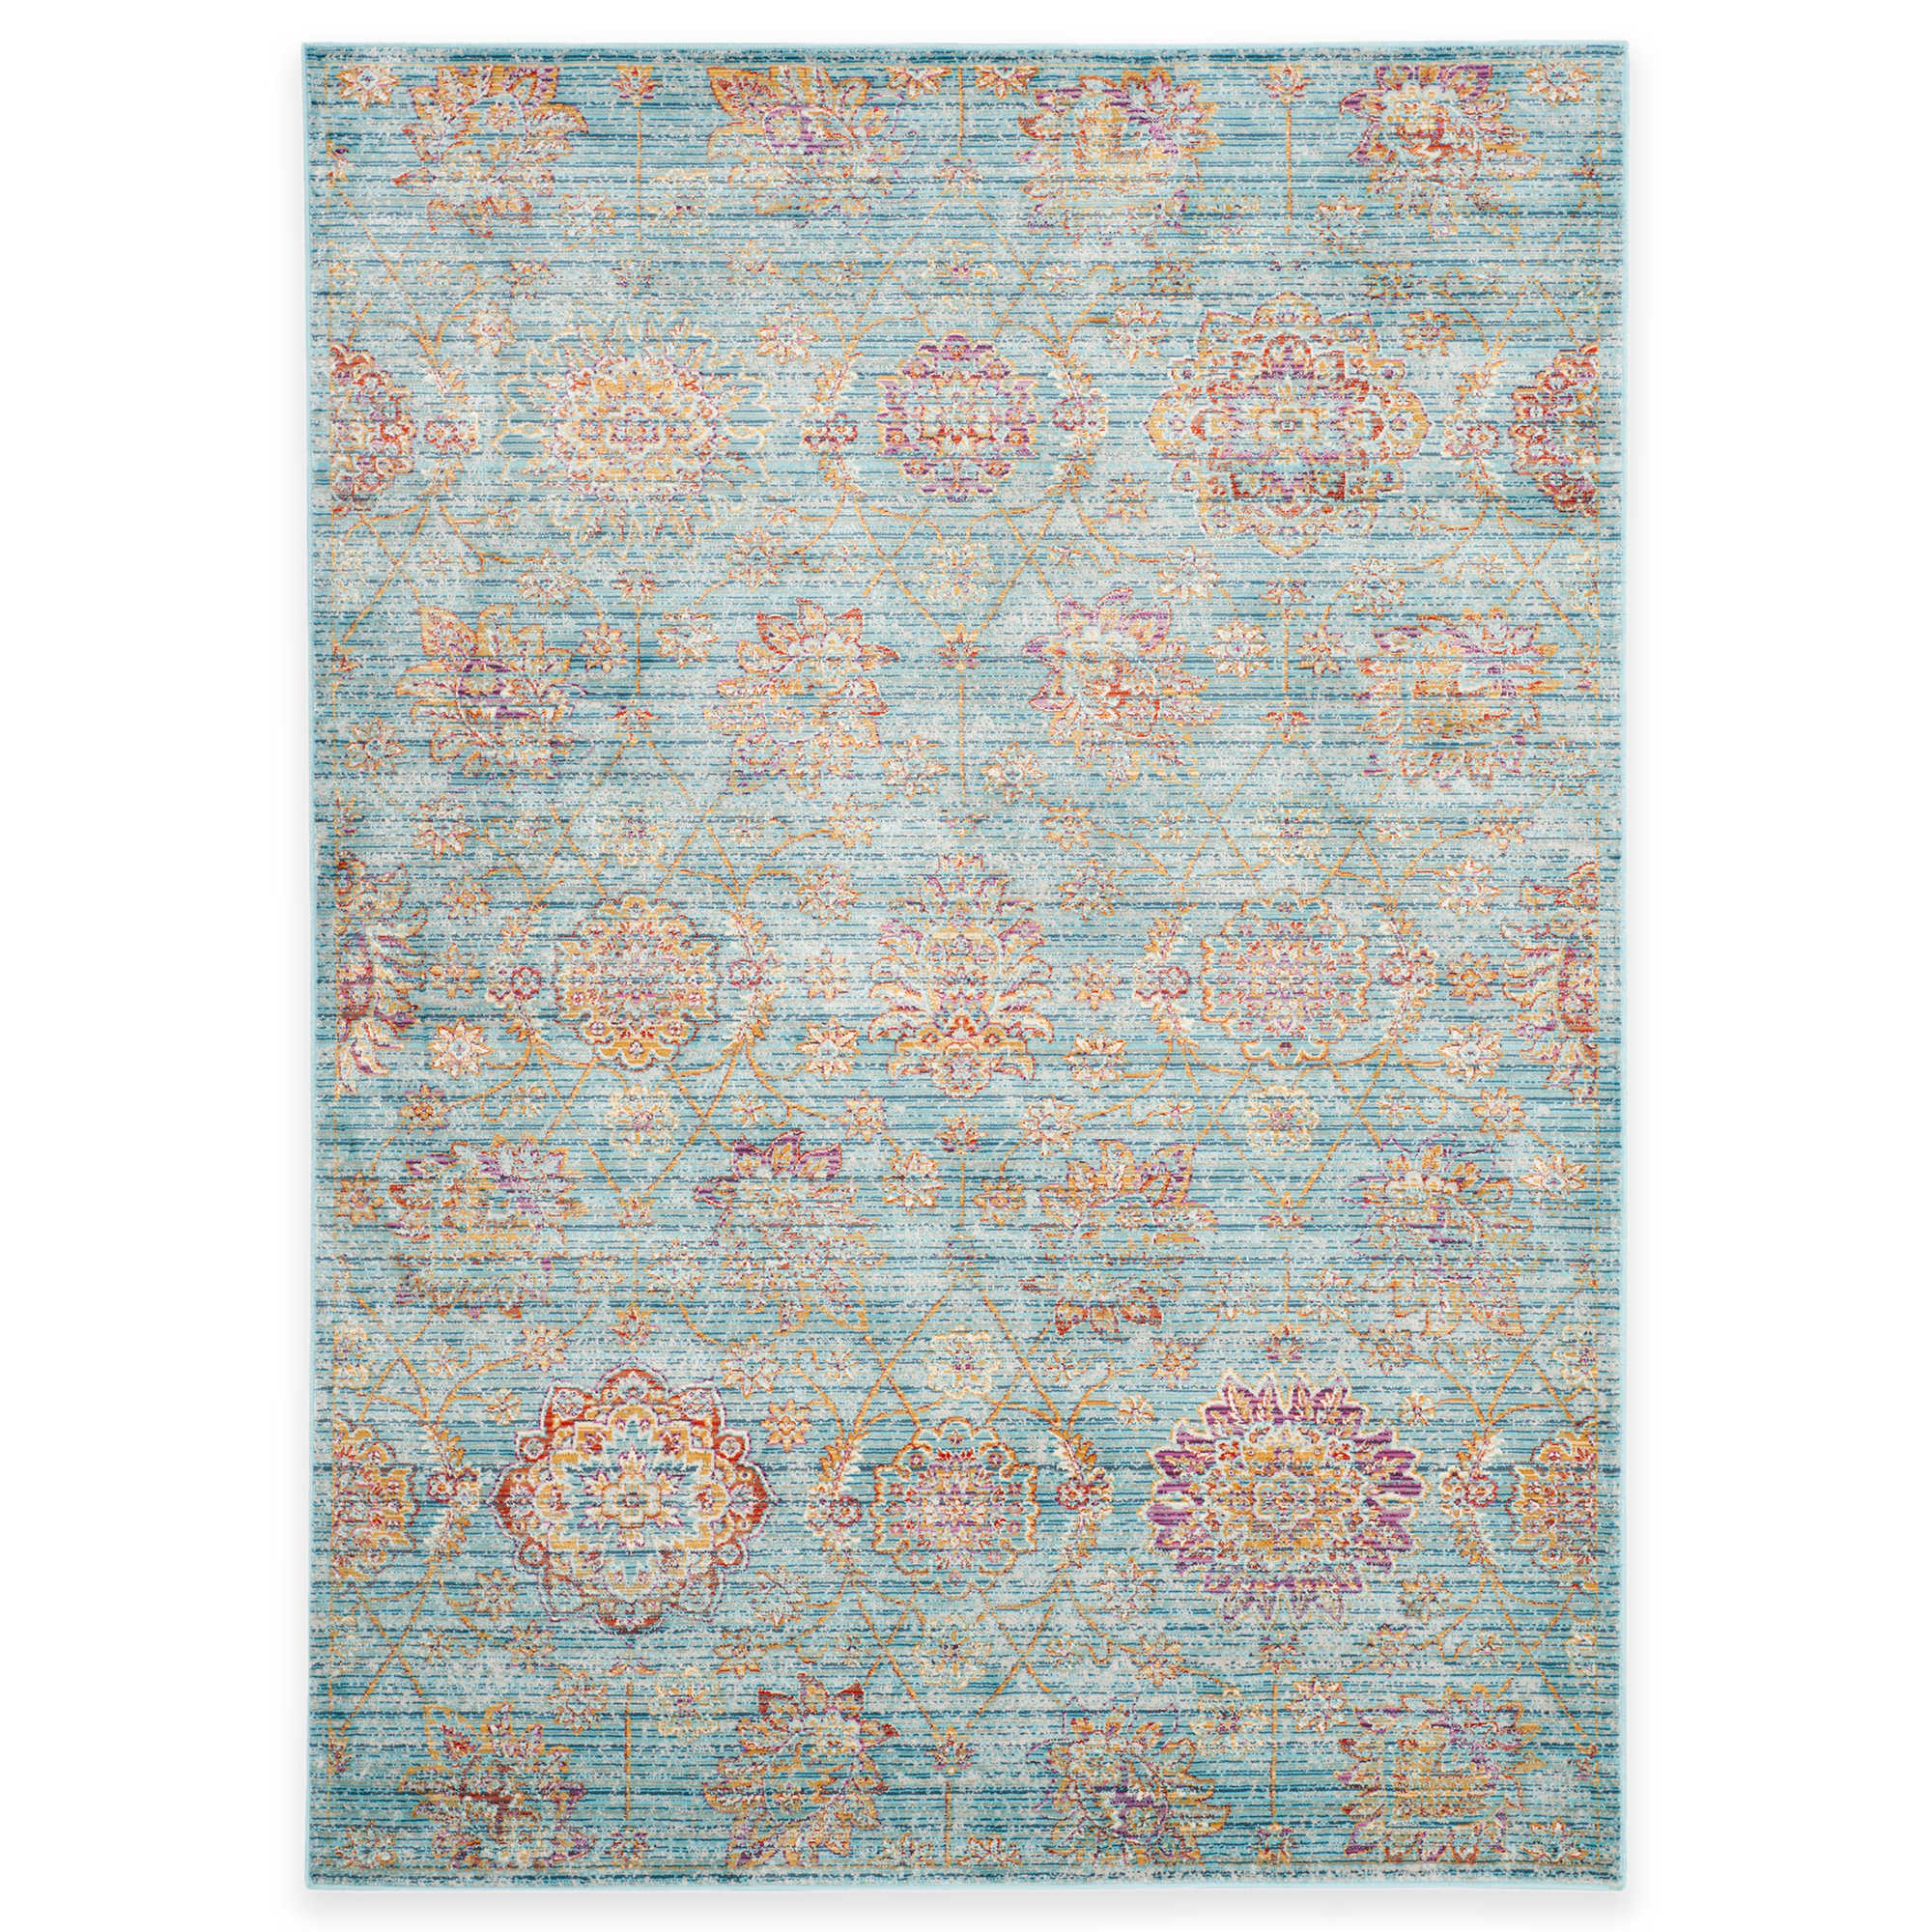 bathroom rugs clearance. image of Safavieh Sevilla Rug Clearance  Home Decor Products Bed Bath Beyond